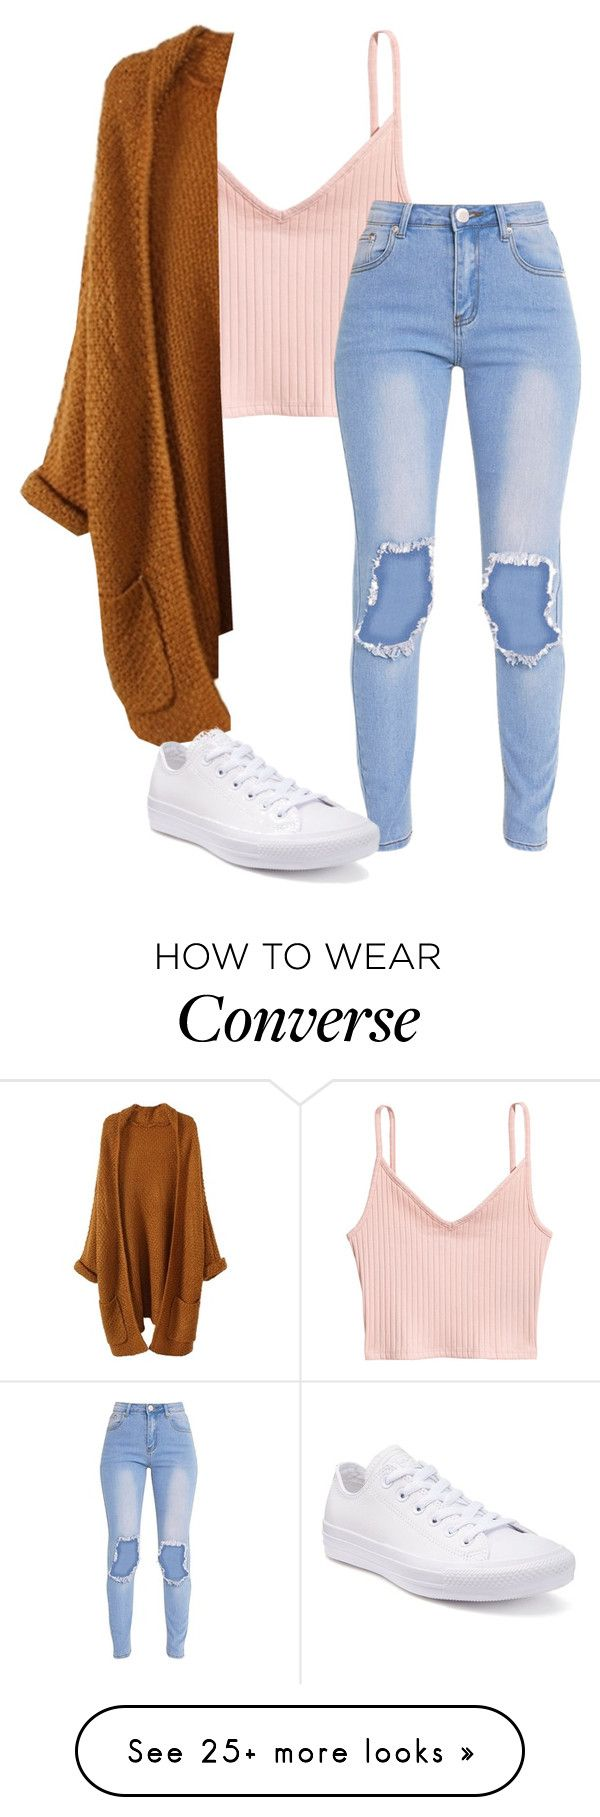 """Untitled"" by folieapanic on Polyvore featuring Converse"